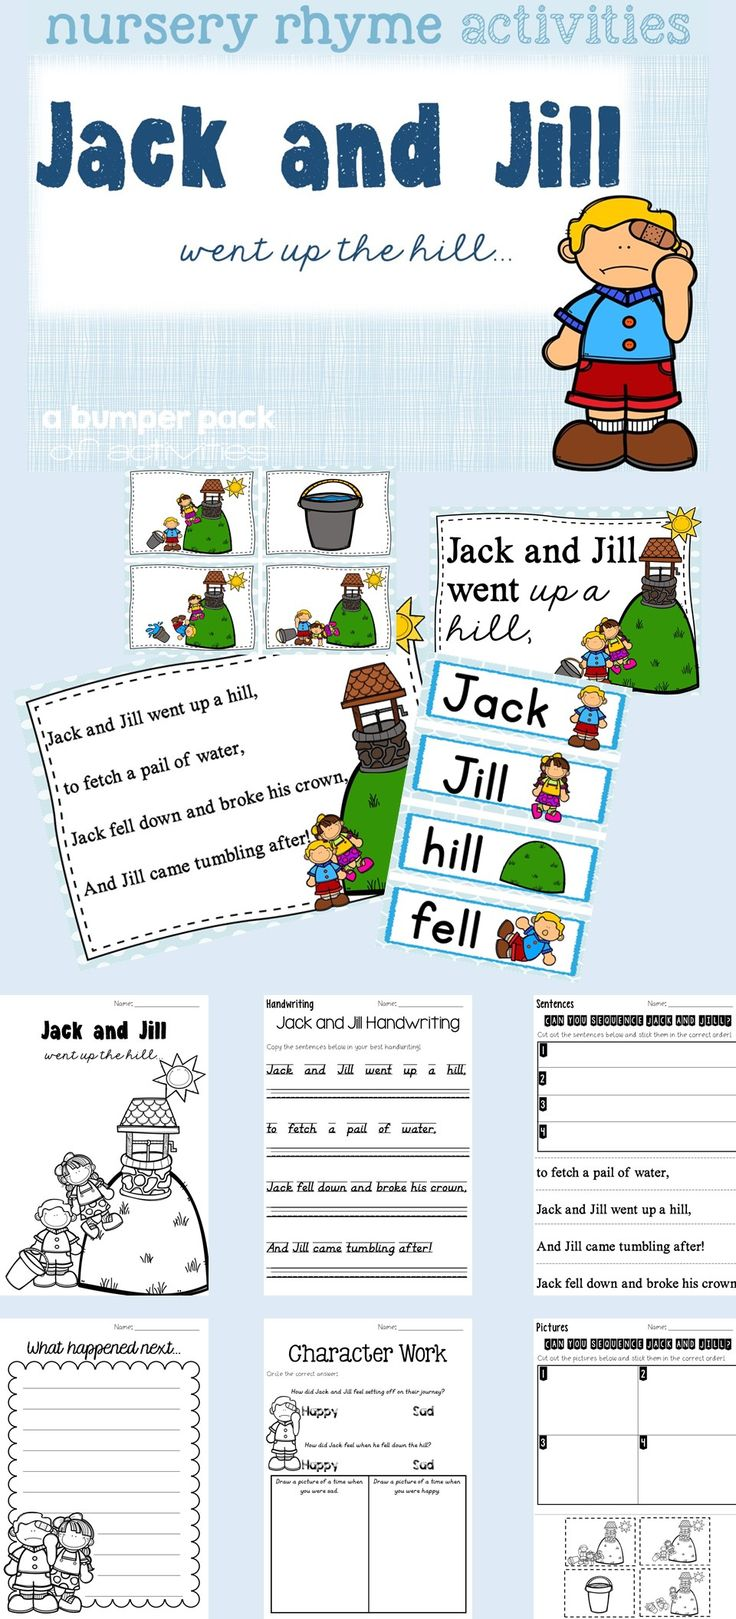 INCLUDED: - Posters (and black and white versions) - Sequencing Activities  - Large version for class display / lesson activity. - Large black and white version. - Sequencing PICTURES worksheets - Sequencing SENTENCED worksheets - Vocabulary display flashcards - Handwriting worksheets - Art attack colouring sheets - Matching rhyming words activity - Character work - Creative Writing work: * What happened next.. * Jack's Diary * Jill's Diary * Re - write the story AND MORE!!!!!!!